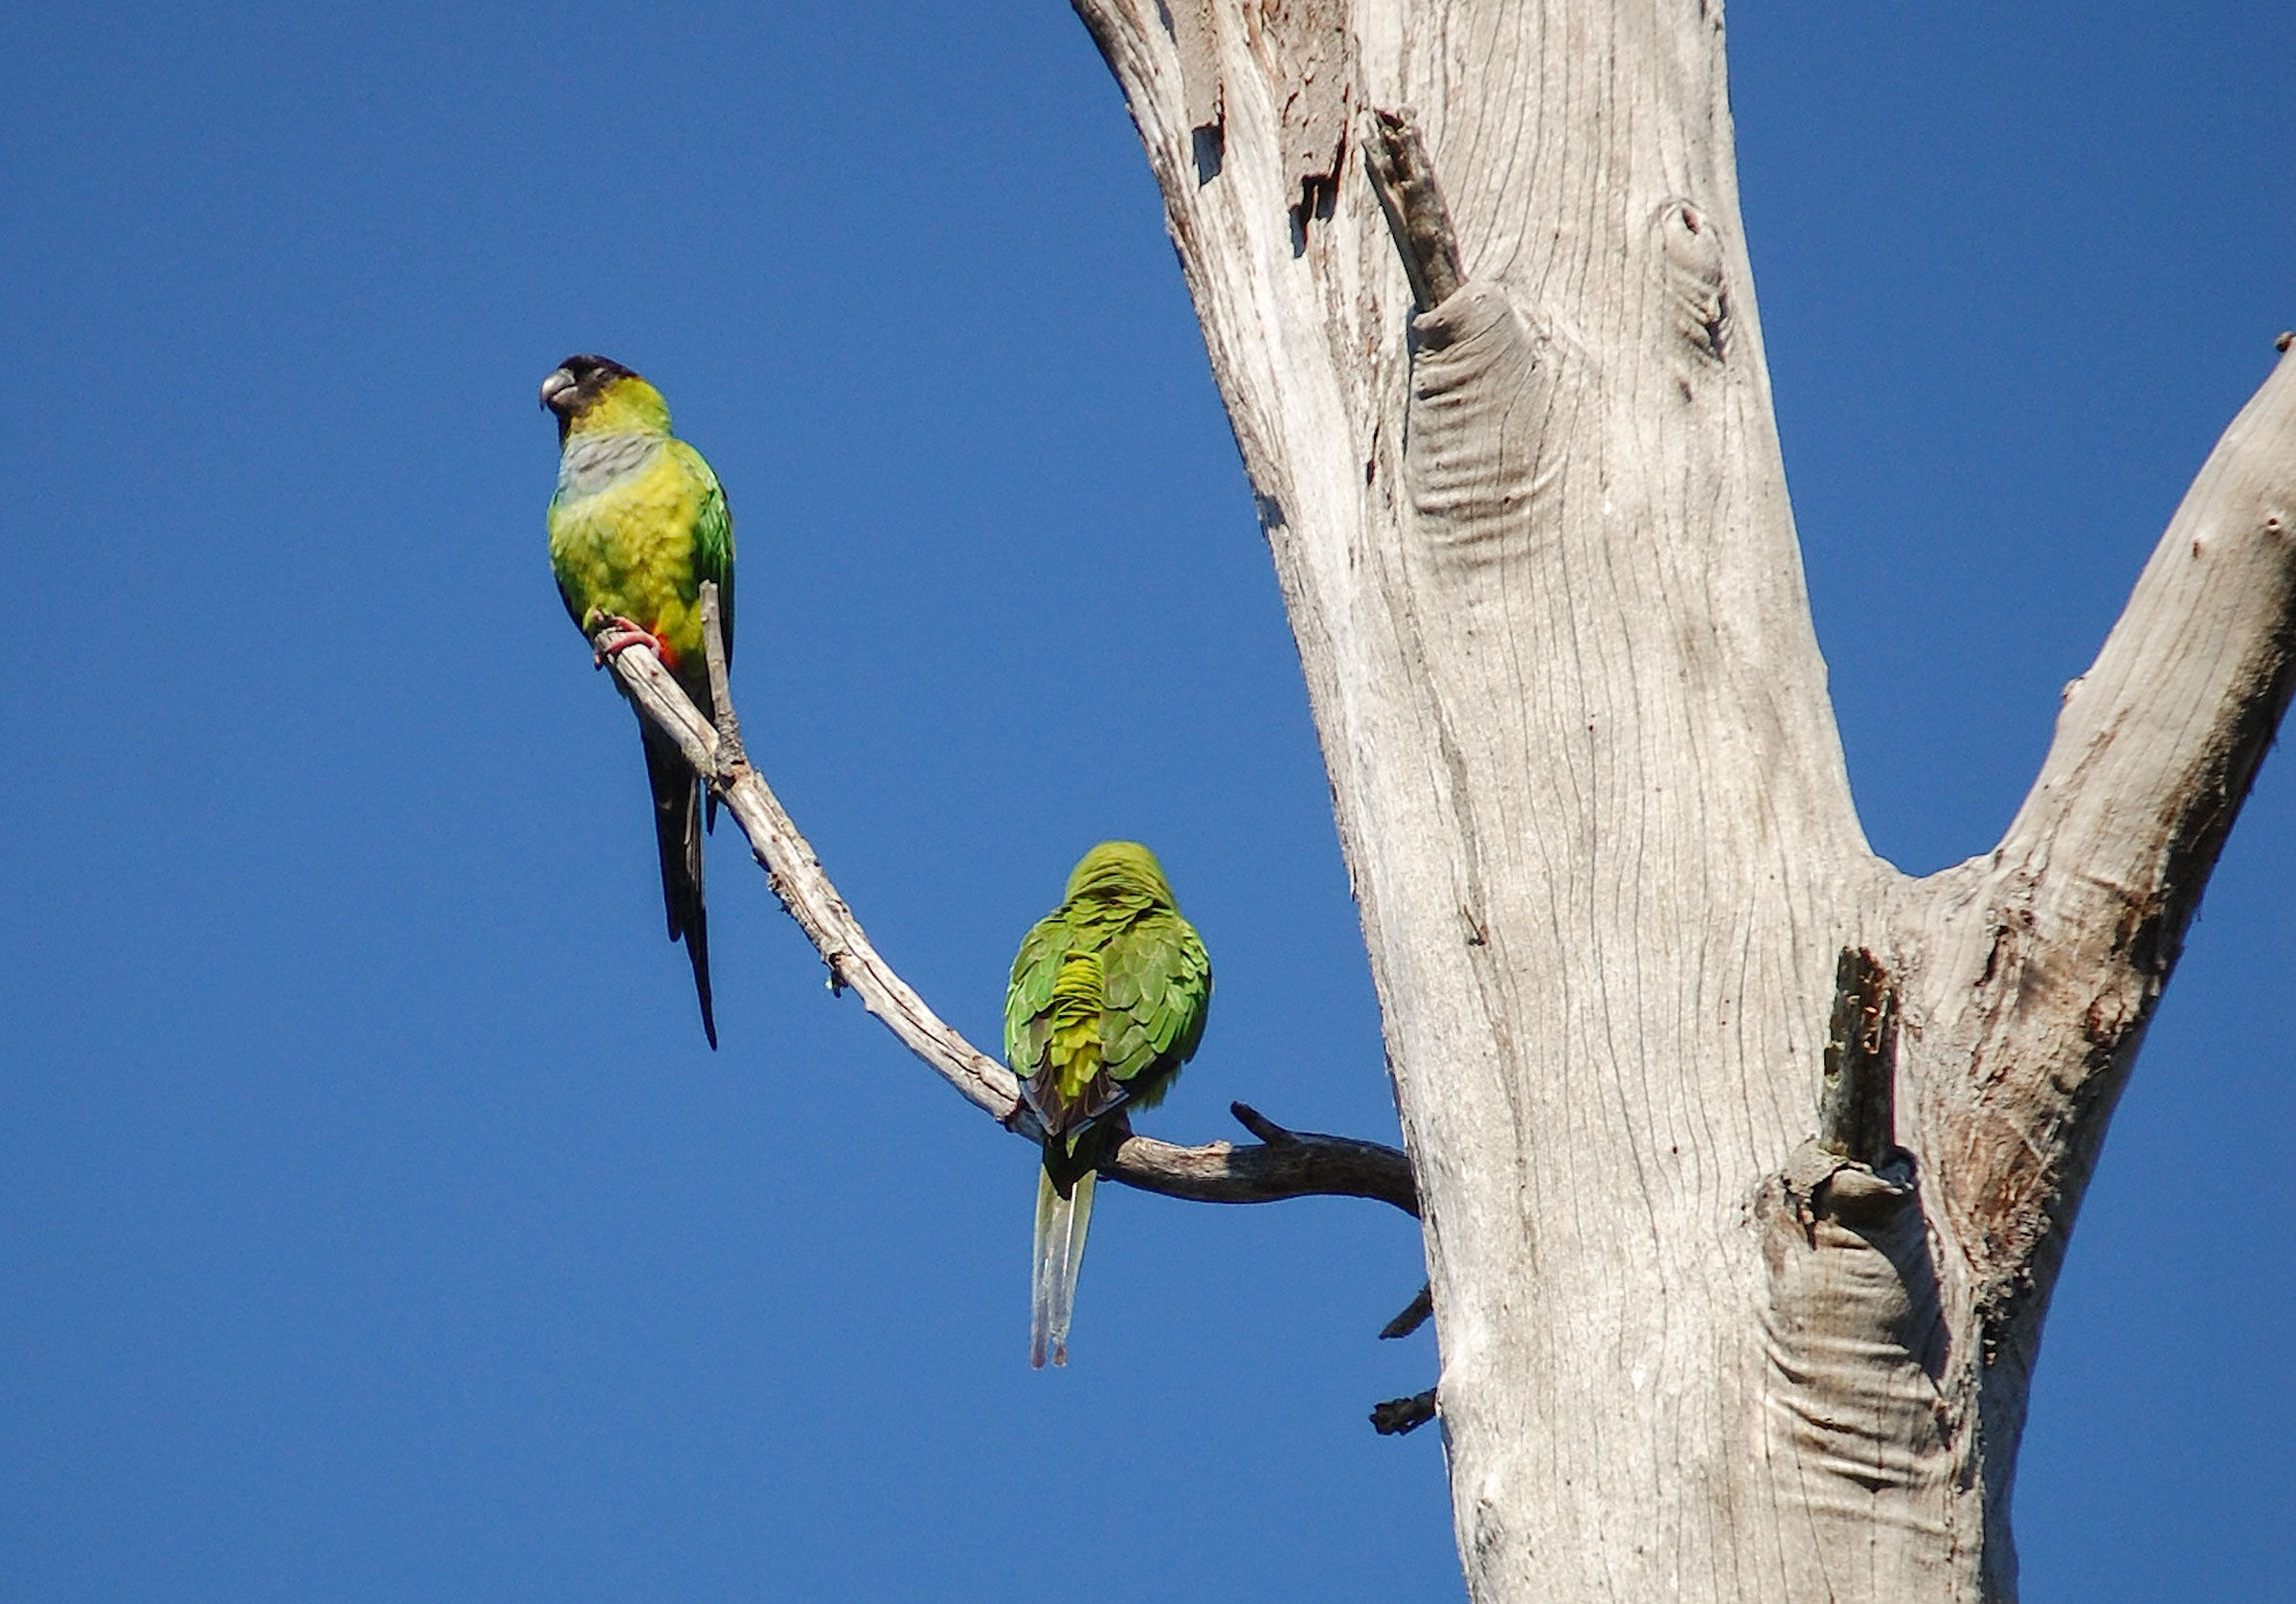 Nanday Parakeets have established large feral populations around Los Angeles, Tampa, Florida's southeastern coast, and near Phoenix. Scott Kinsey/Great Backyard Bird Count